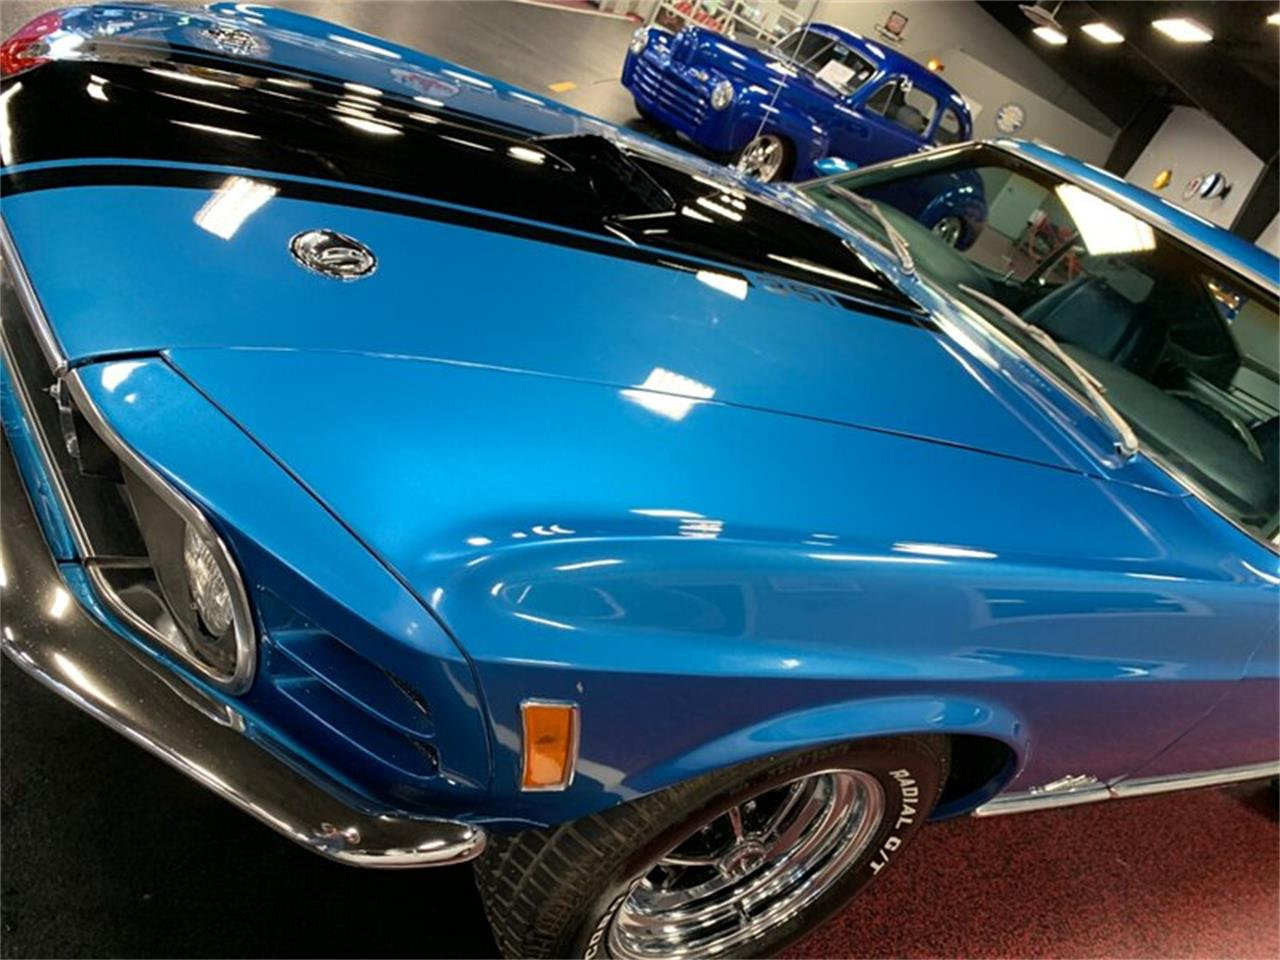 Large Picture of 1970 Mustang Mach 1 - $37,900.00 - QGAG